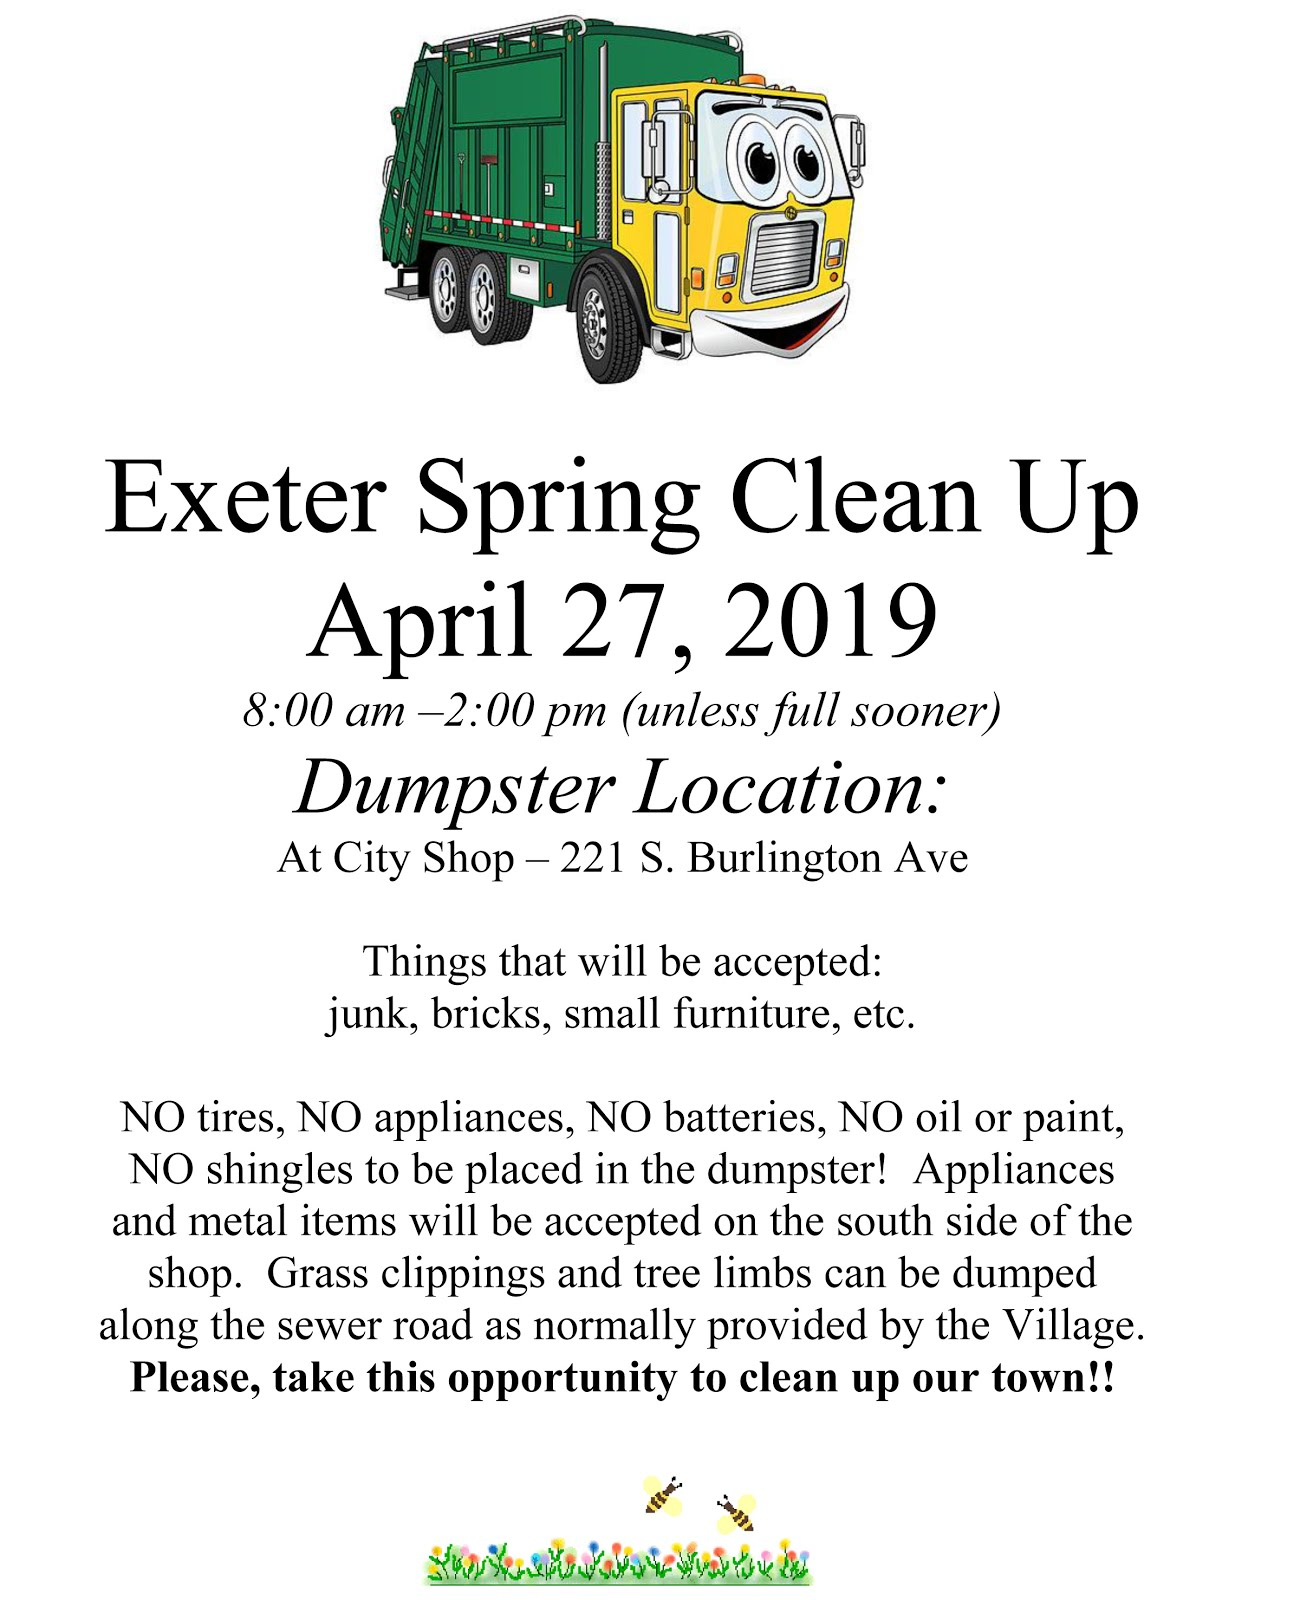 Exeter Spring Clean Up